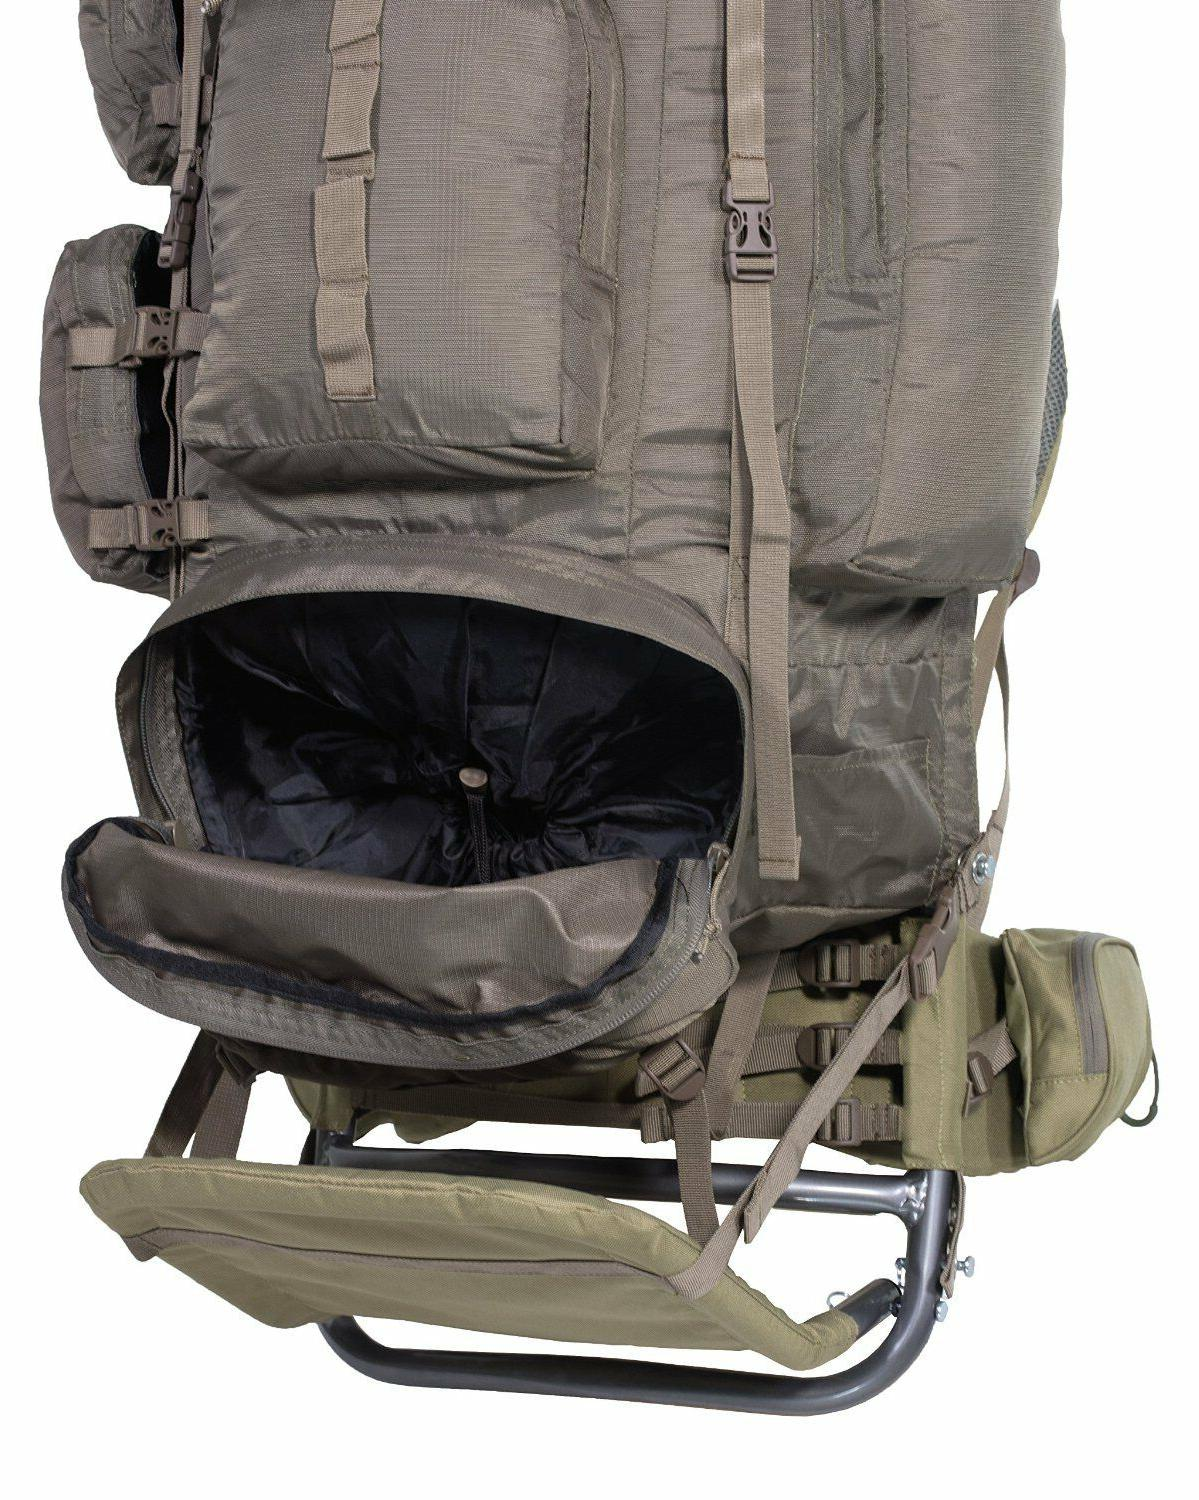 Freighter Back Pack Gear Bag Hydration Camping